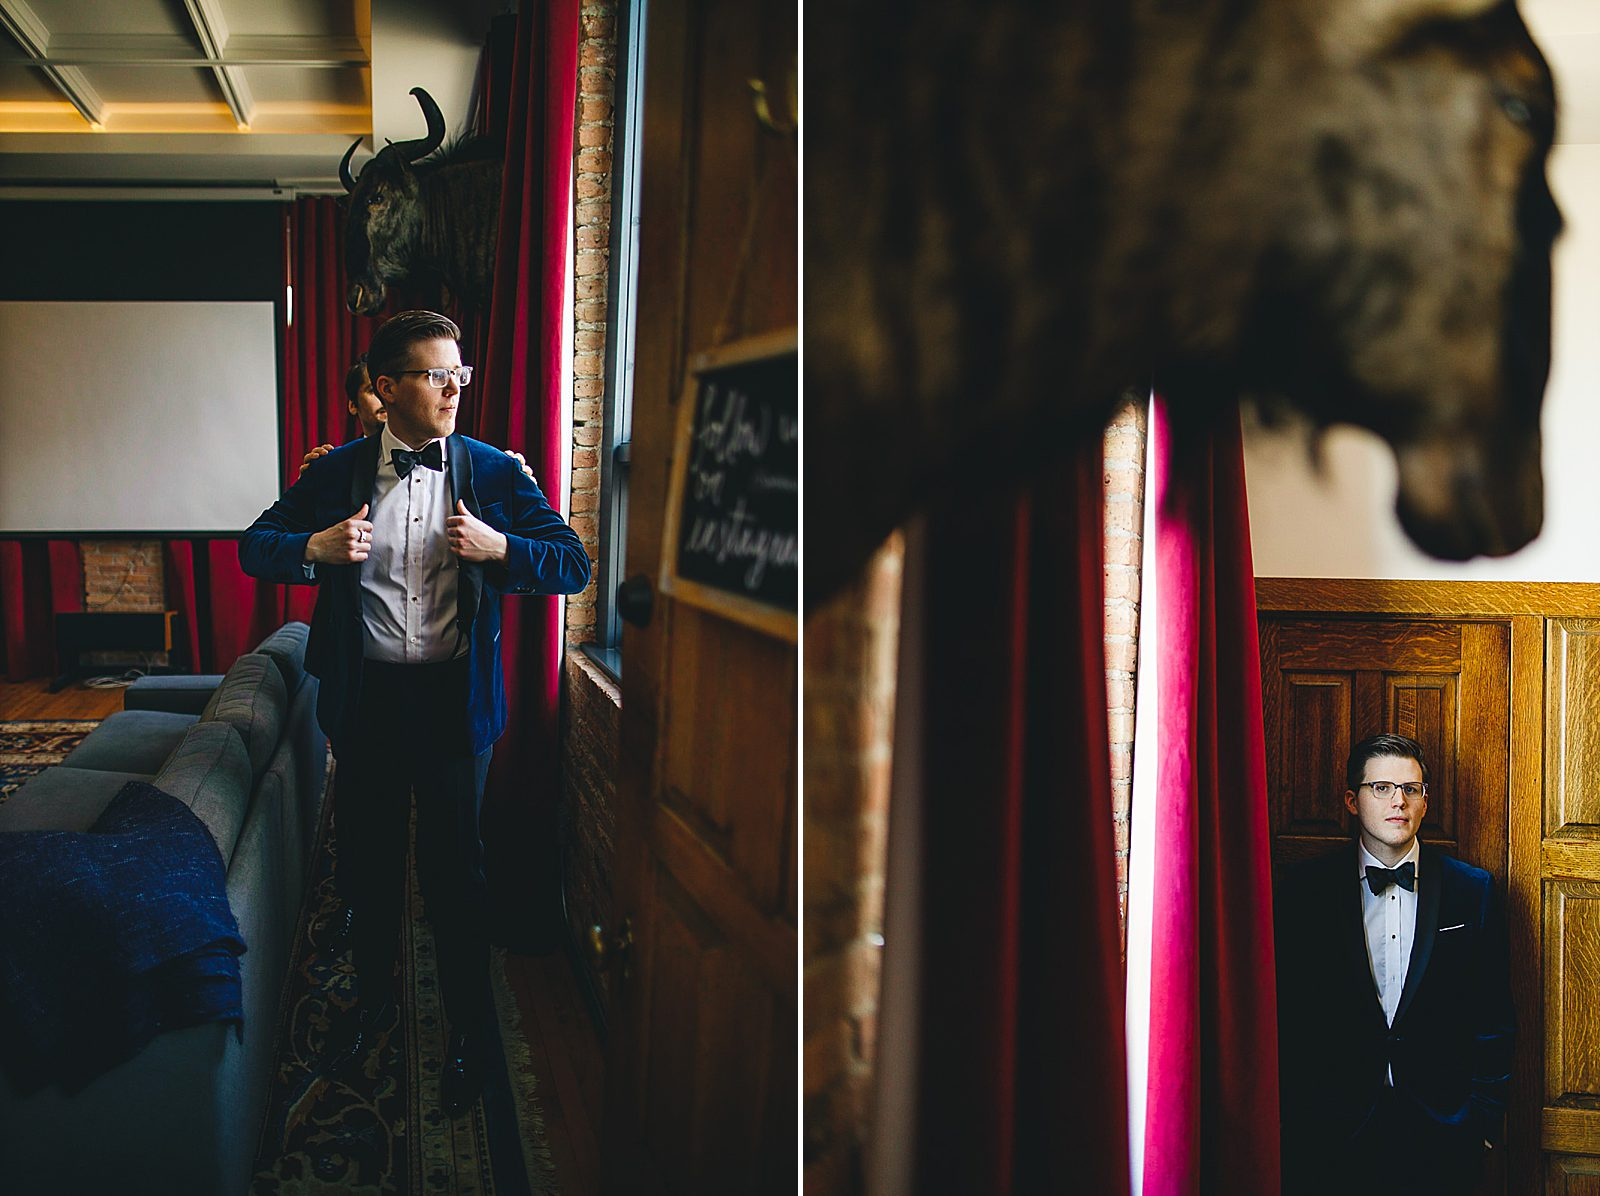 6 chicago wedding photograhy - The Wedding of Samantha + Kyle in Chicago